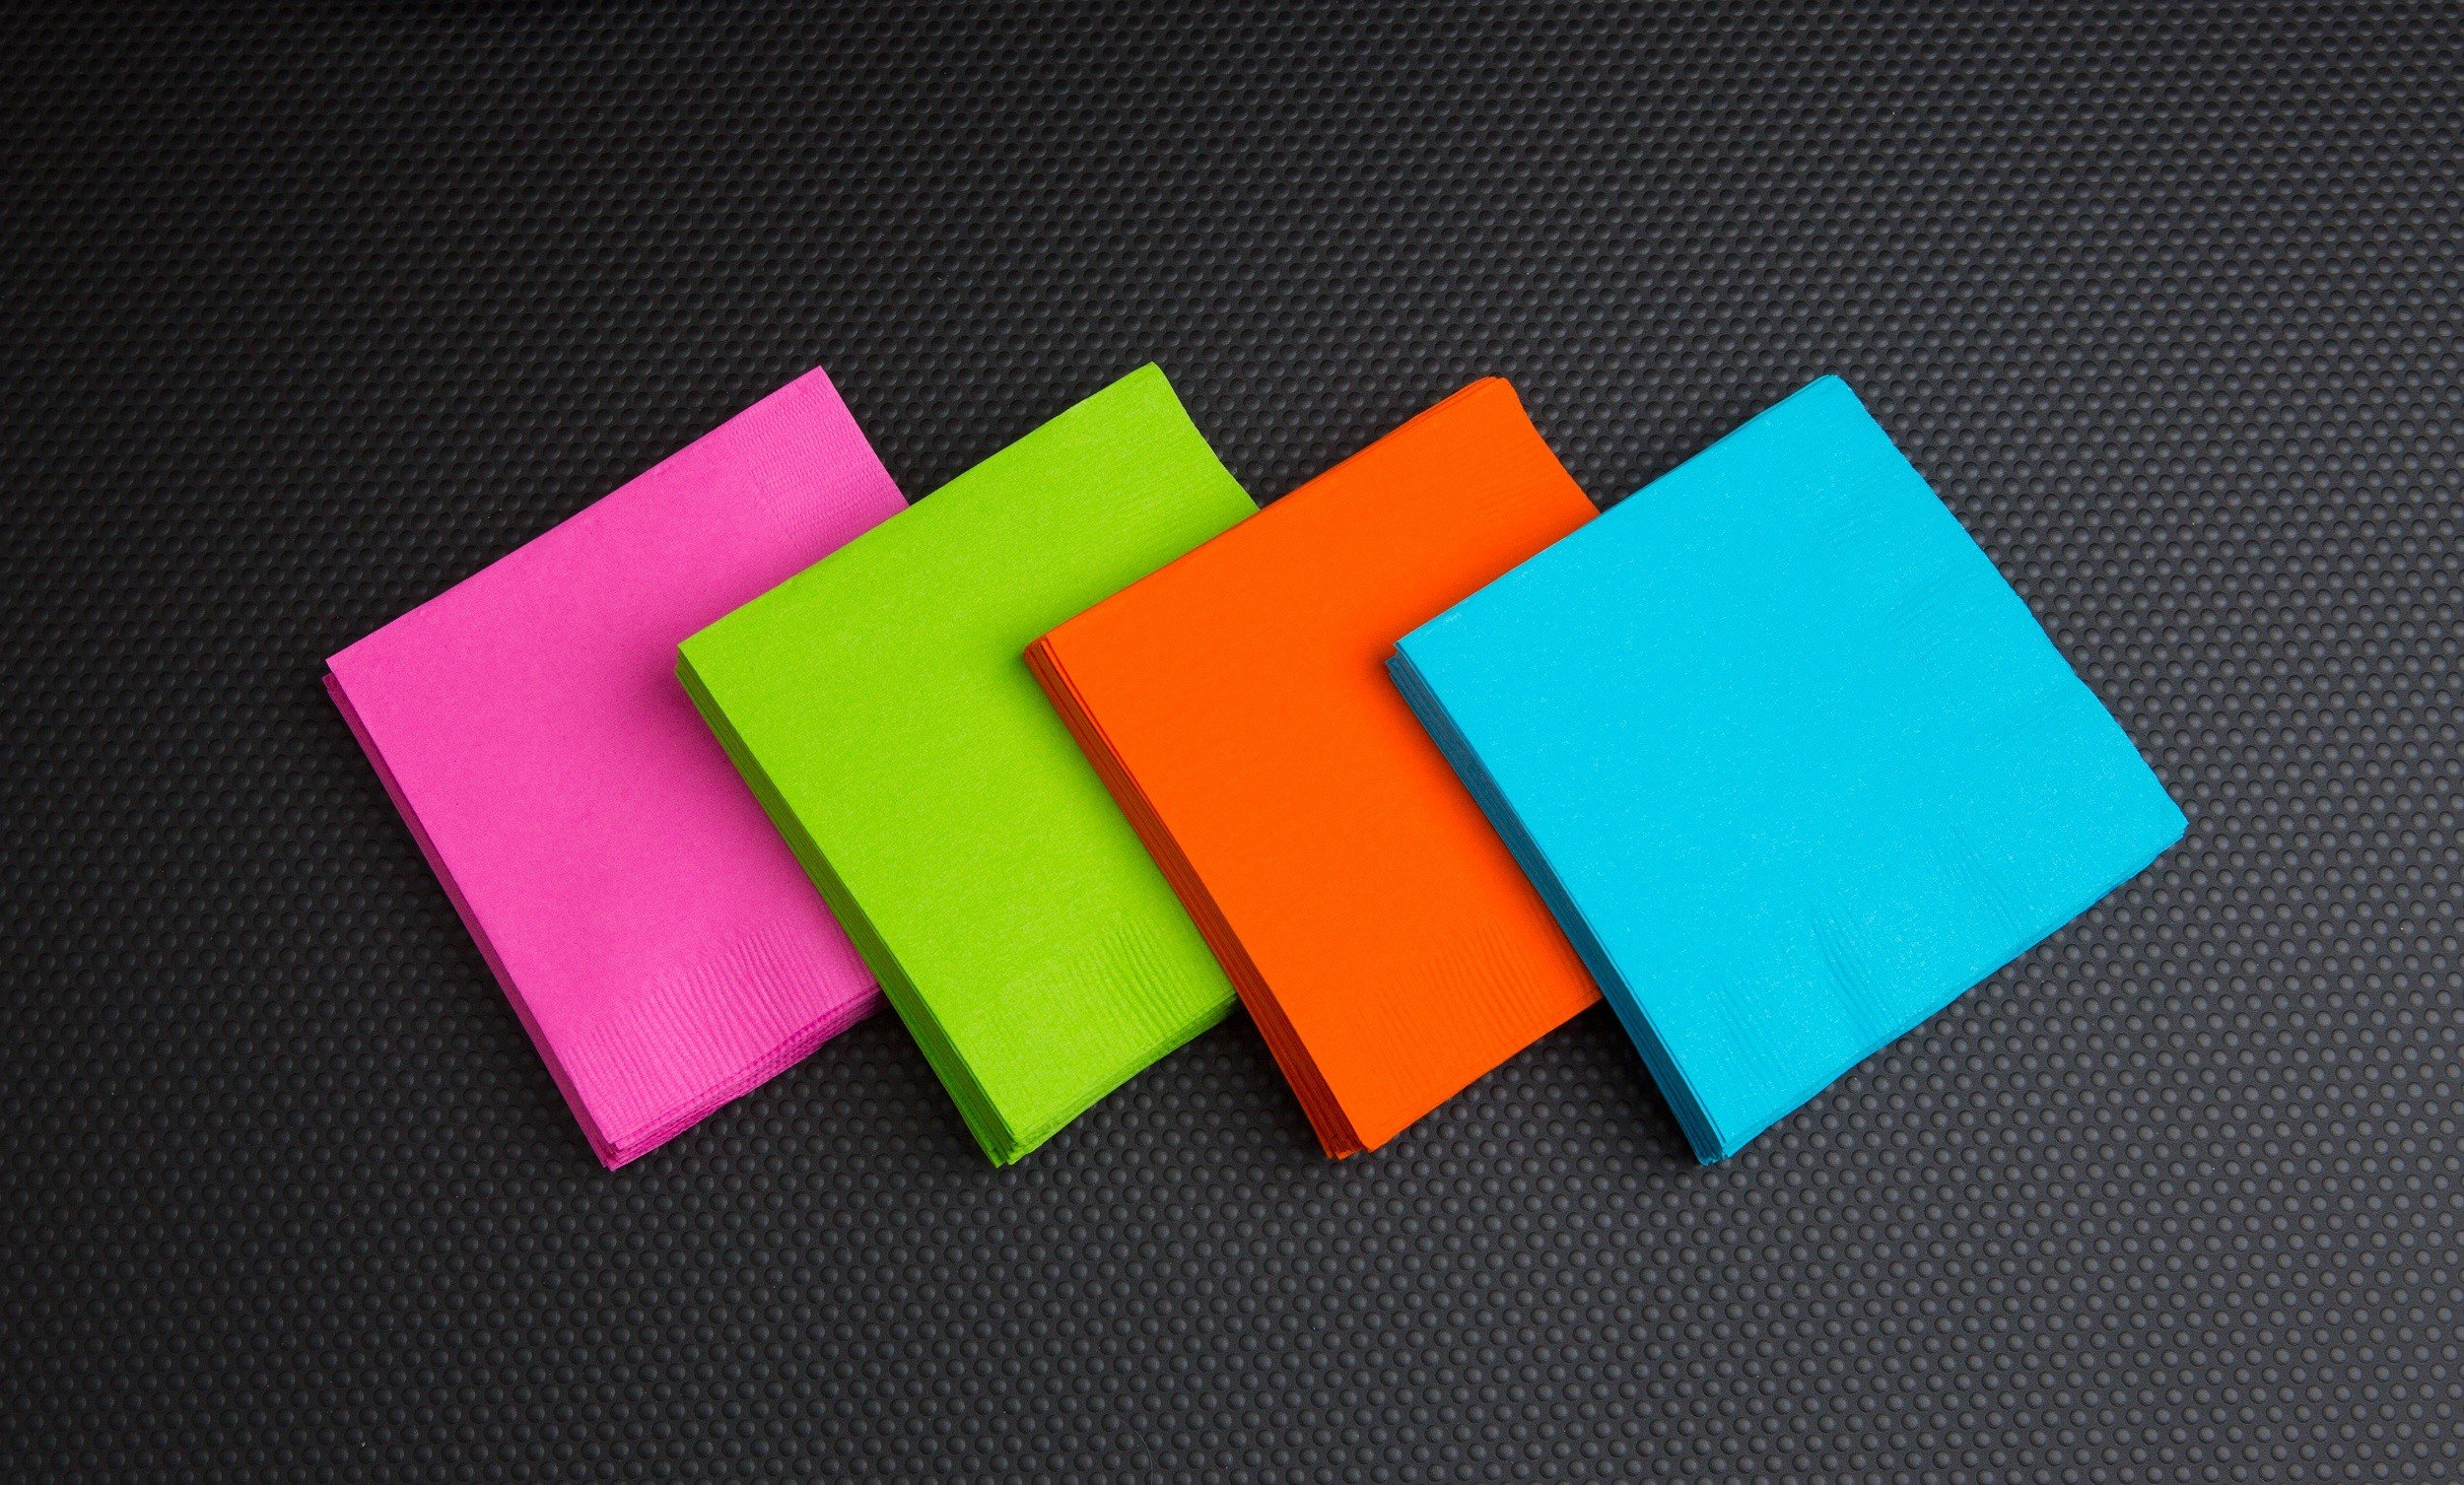 Party Essentials 2-Ply Paper Cocktail Beverage Napkins, Assorted Neon Brights, 48-Count by Party Essentials (Image #2)